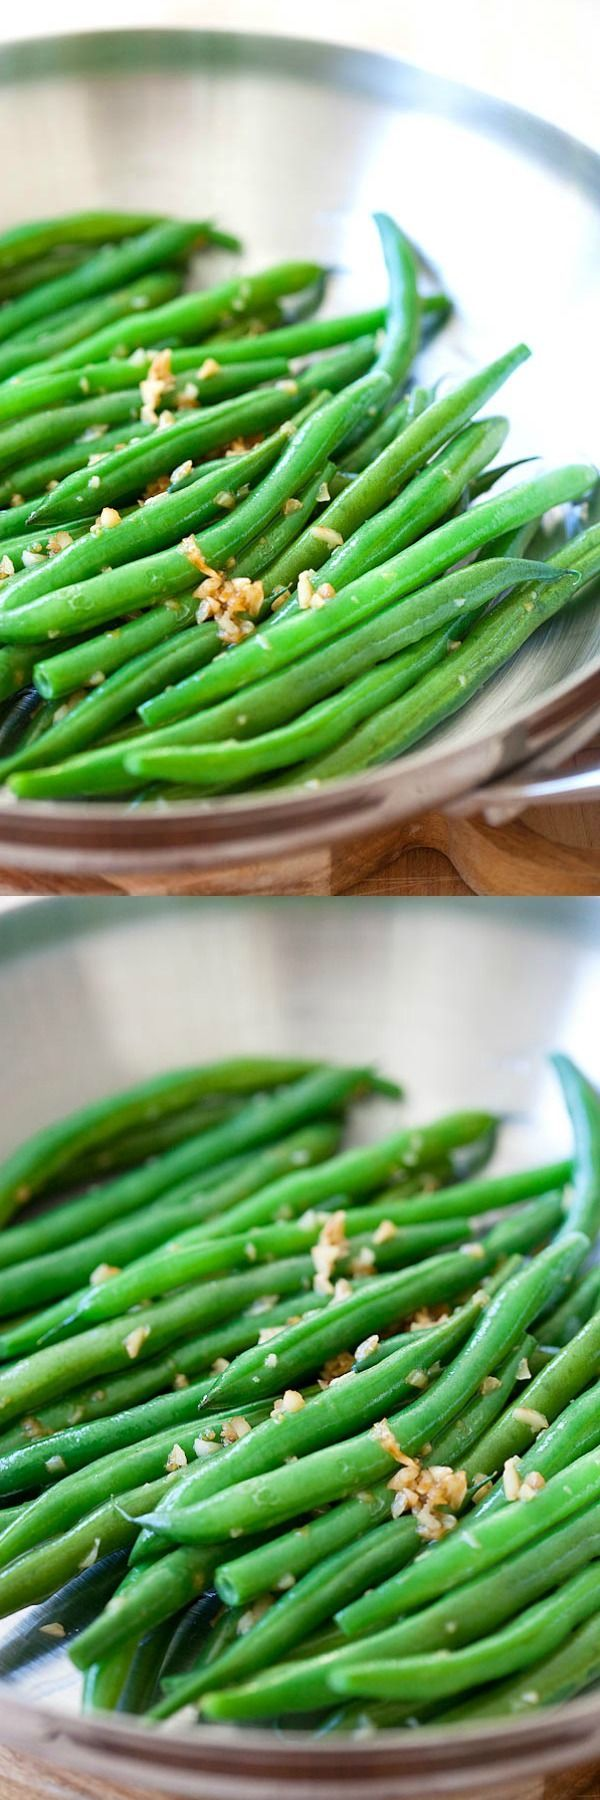 Garlic Green Beans - 10-min stir-fry green beans recipe with garlic. Super healthy, easy and budget-friendly for the entire family | http://rasamalaysia.com